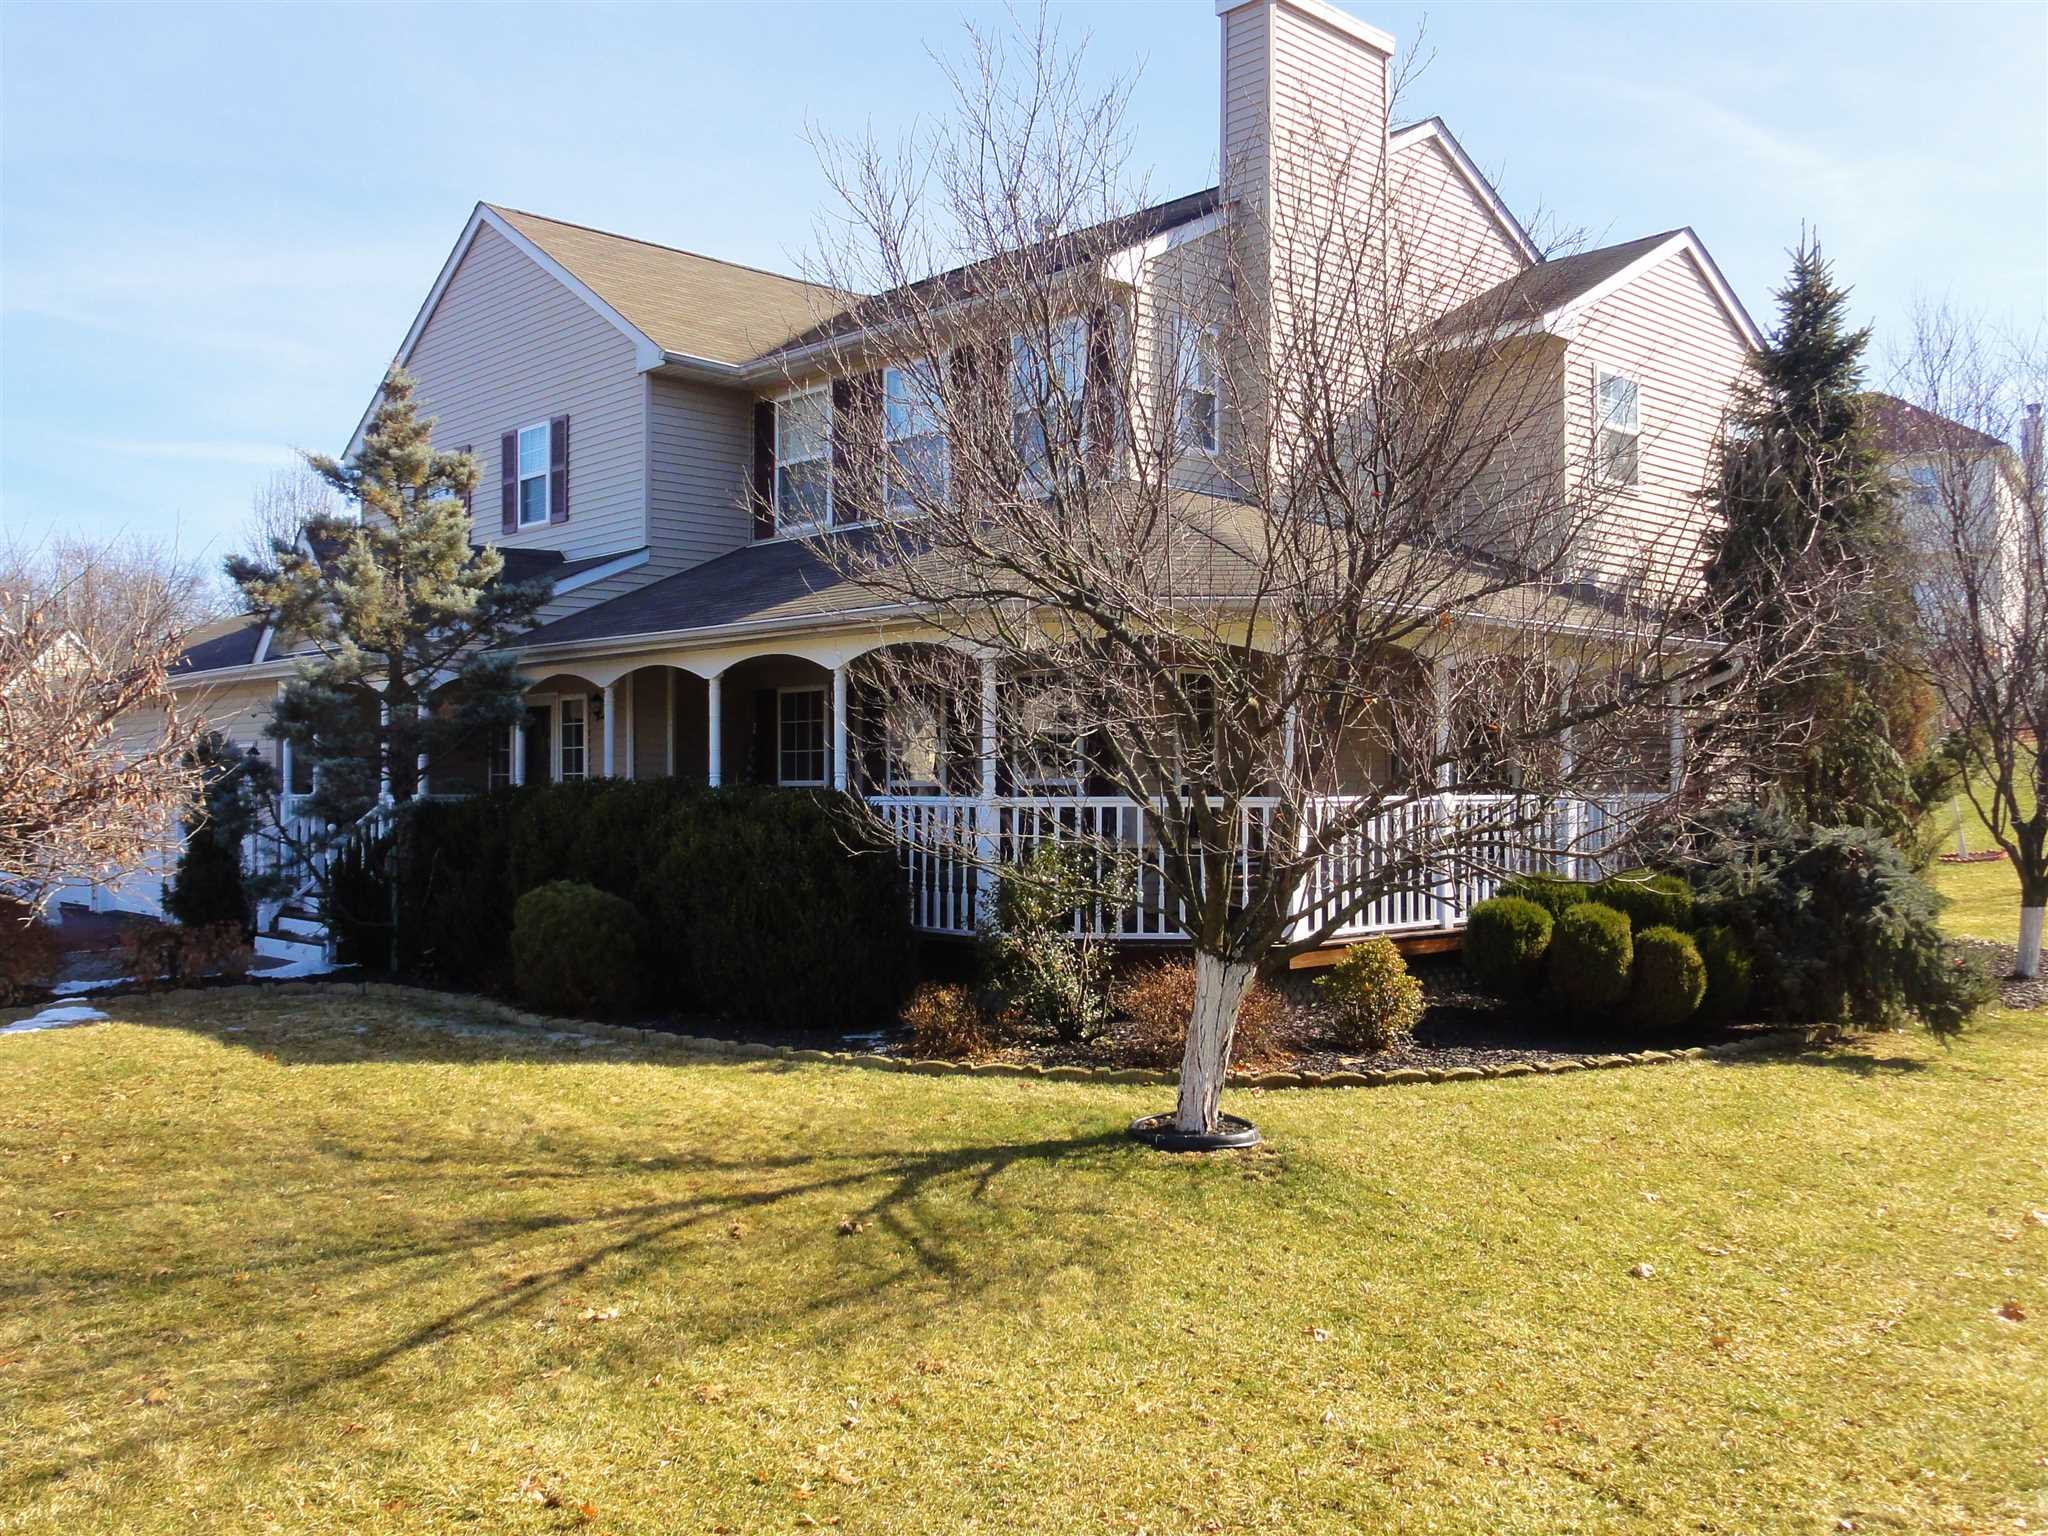 Single Family Home for Sale at 4 BARBERRY Lane 4 BARBERRY Lane Fishkill, New York 12590 United States